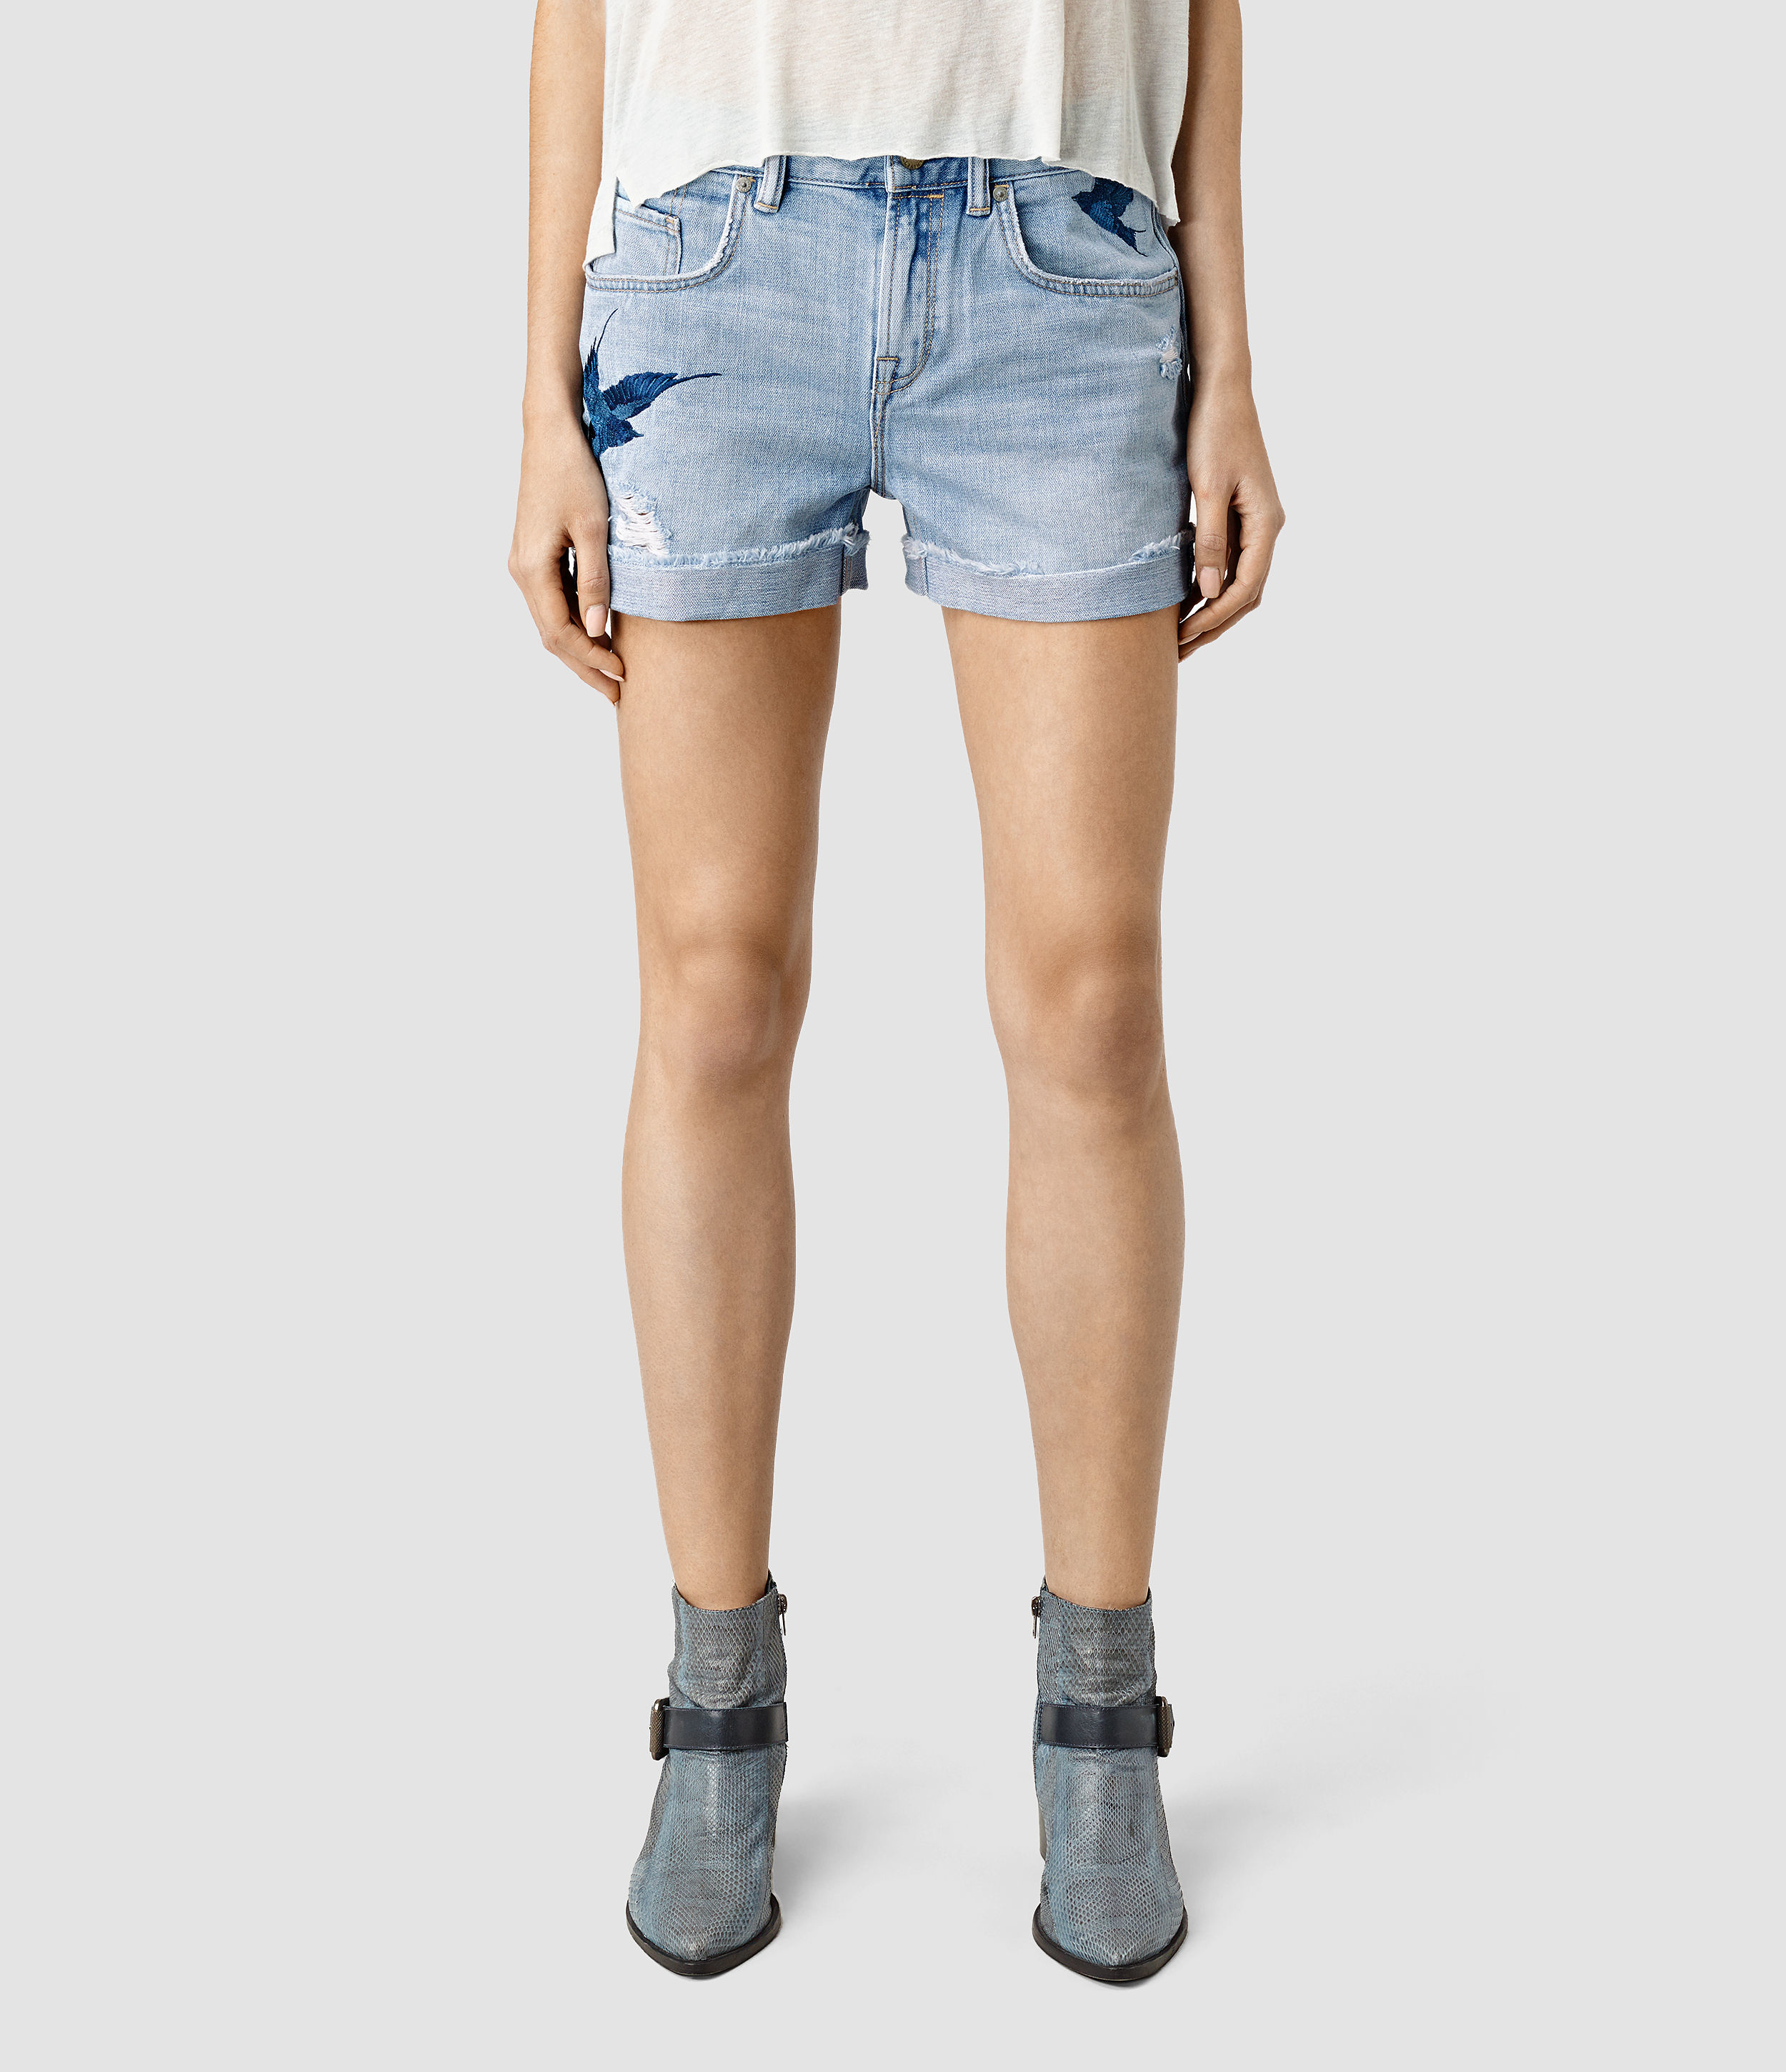 Allsaints Birds Embroidered Denim Shorts Usa Usa In Blue